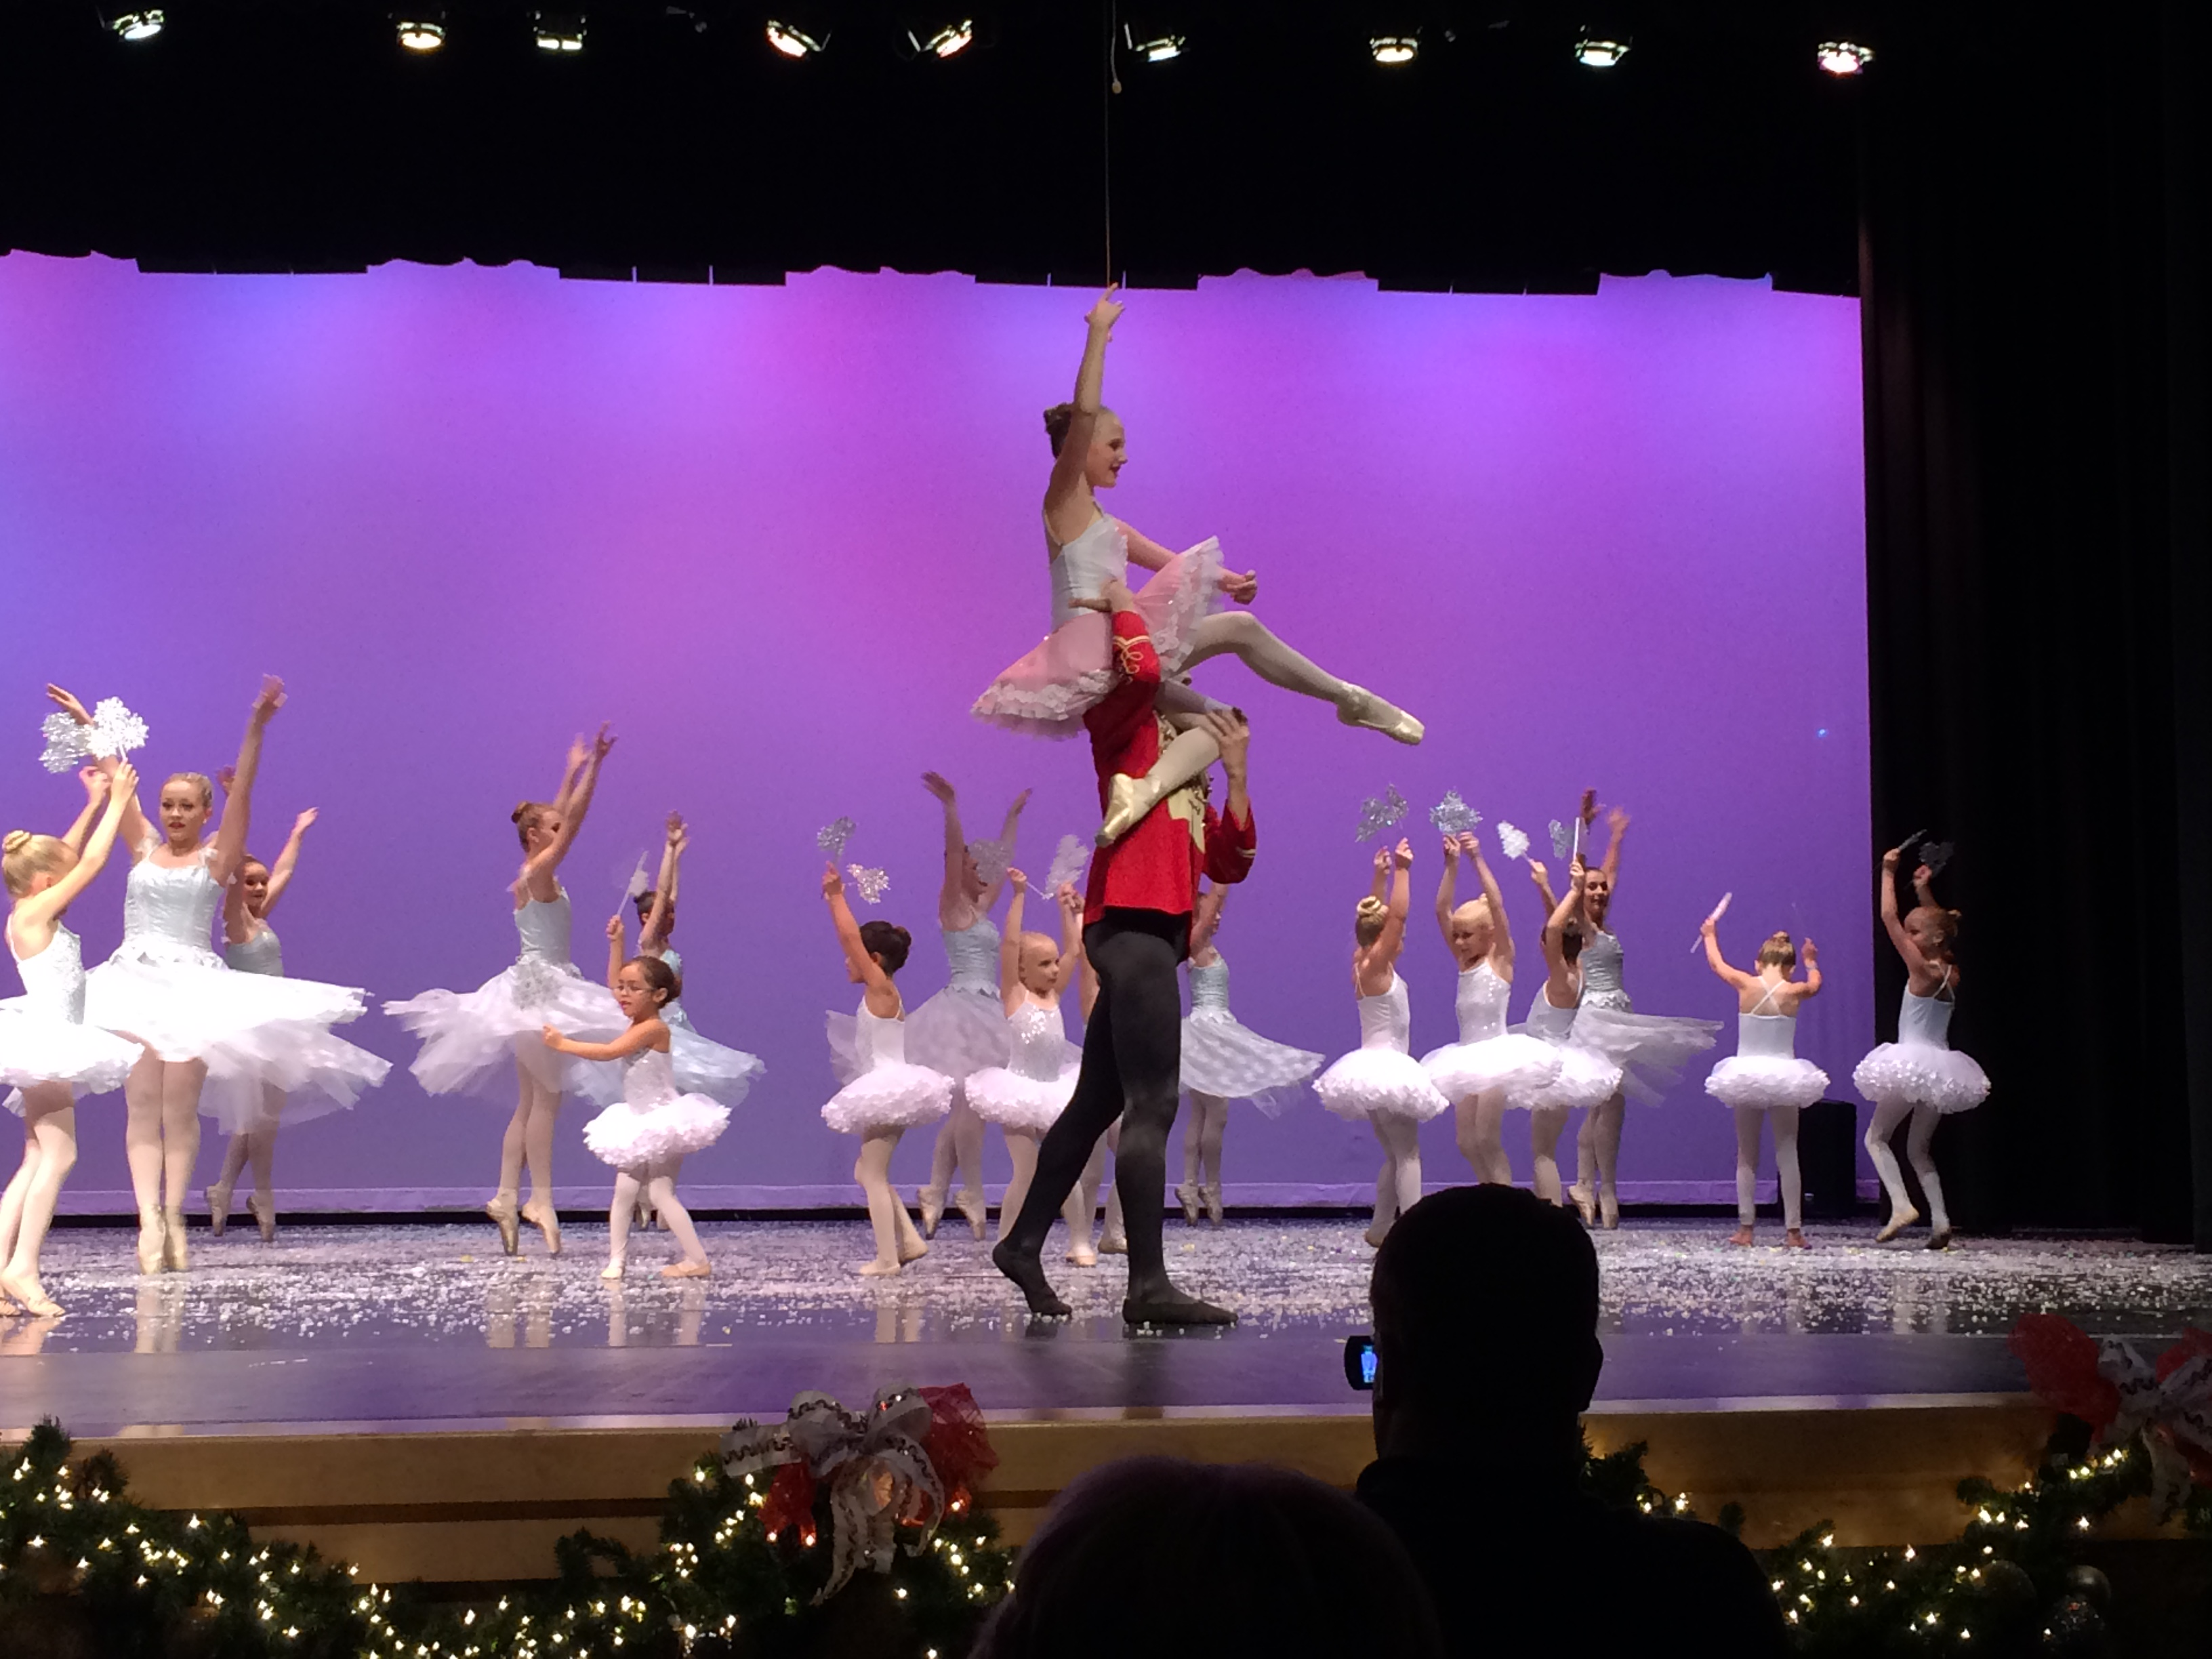 The Nutcracker, staring my niece Dec. 6, 2014 273